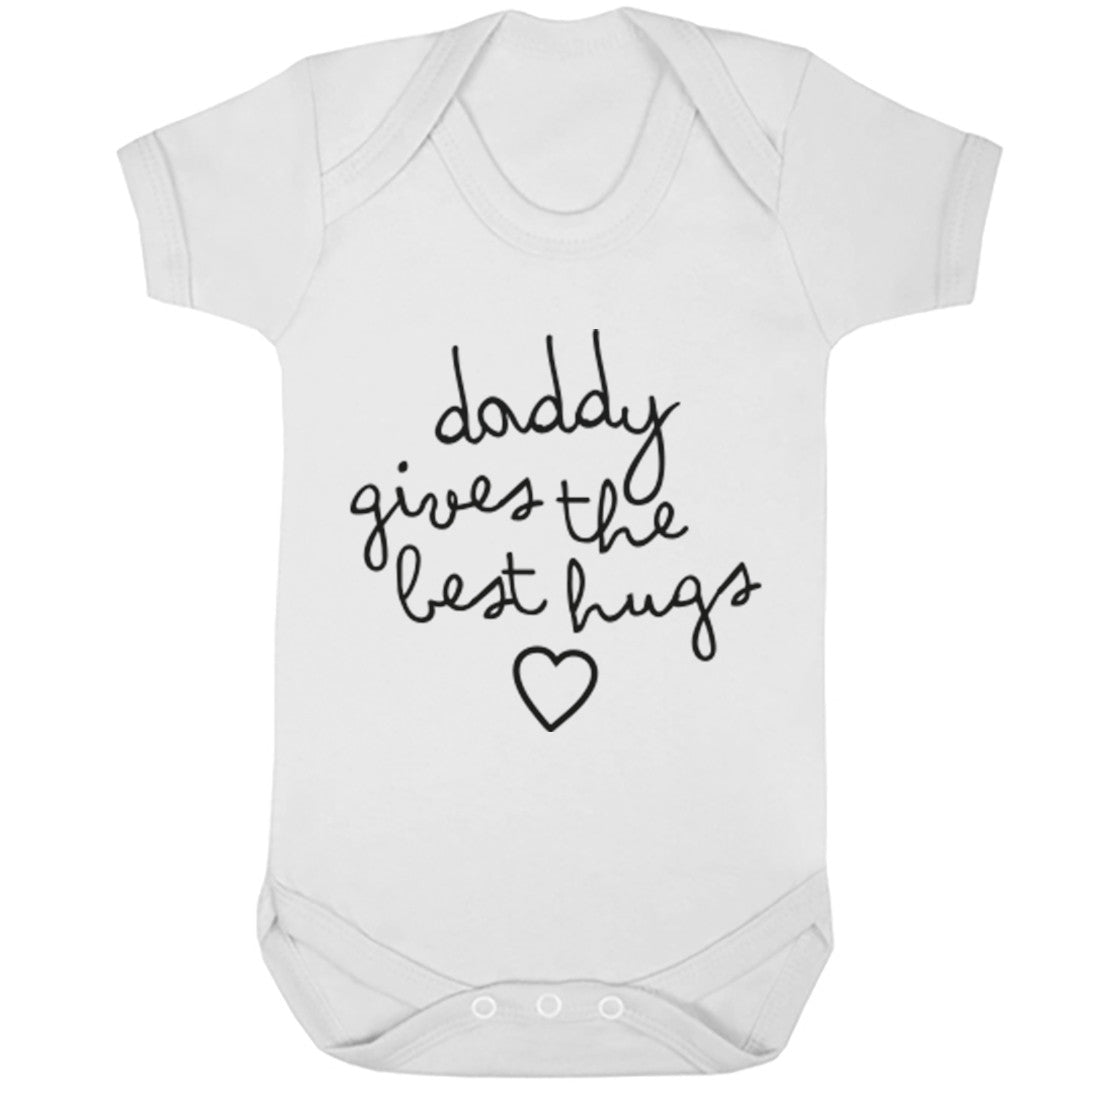 Daddy Gives The Best Hugs Baby Vest K1667 - Illustrated Identity Ltd.